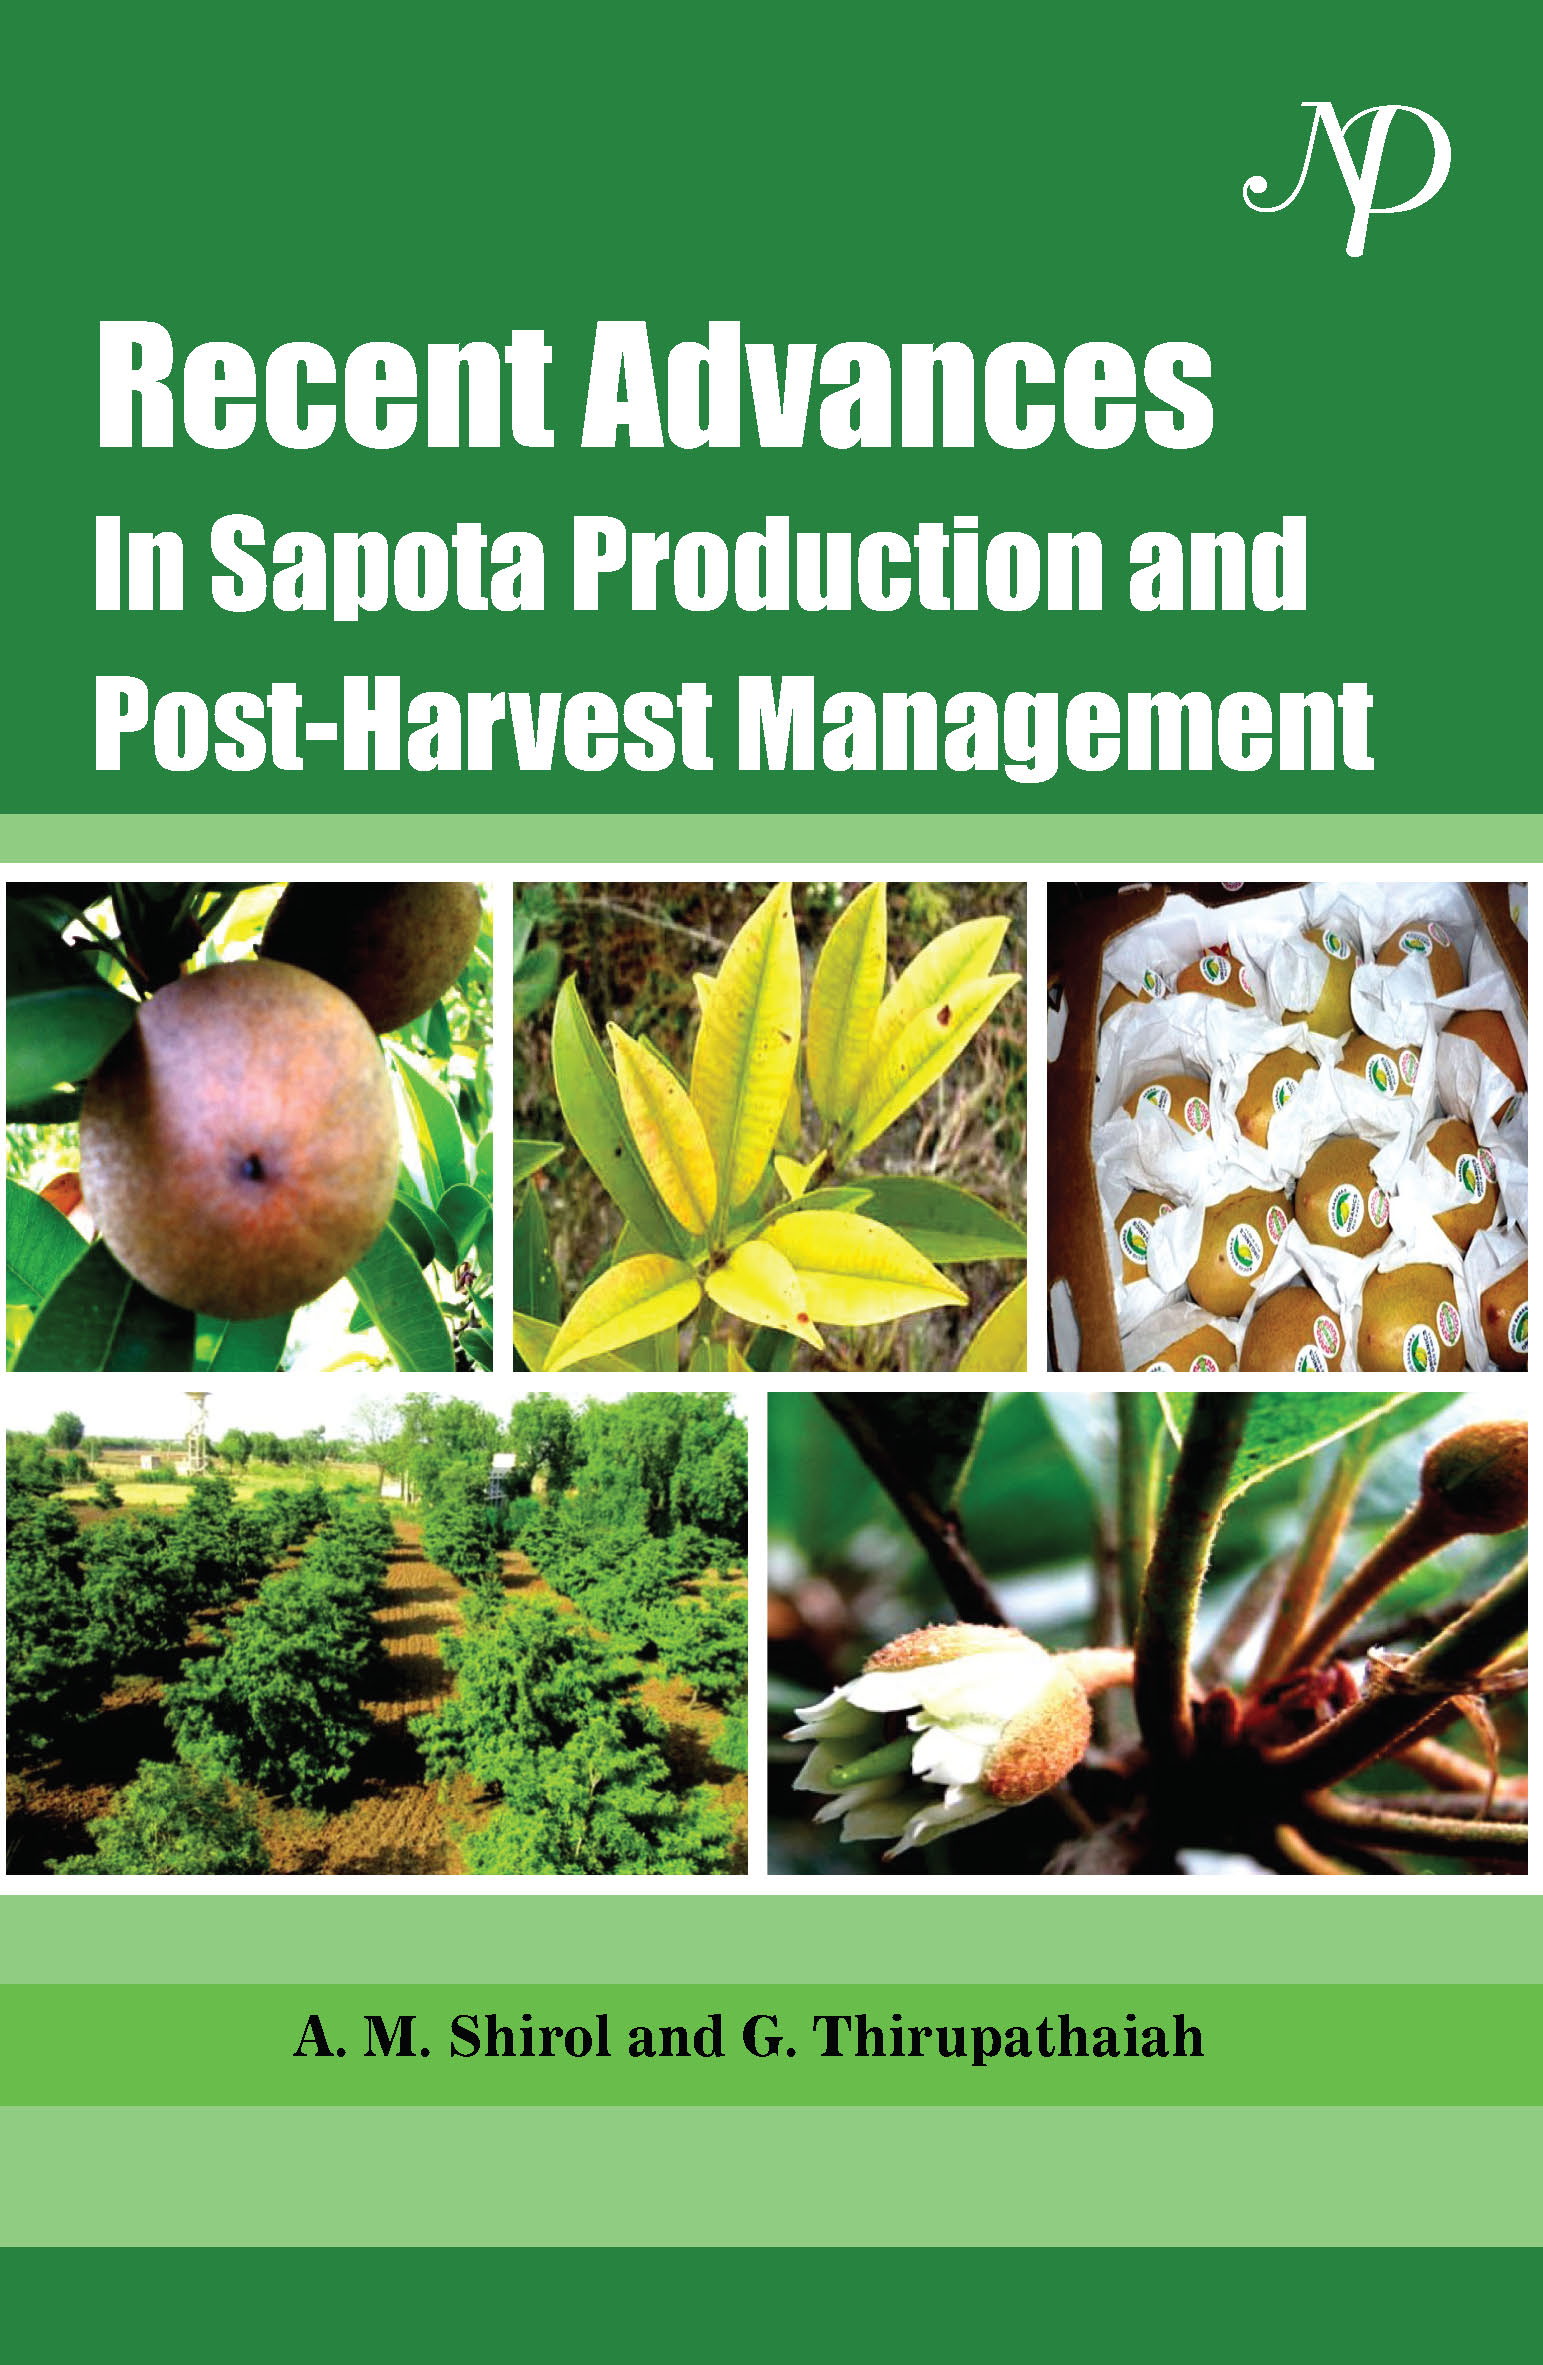 Cover Sapota- Improvement, Production and Post - Harvest Management final.jpg